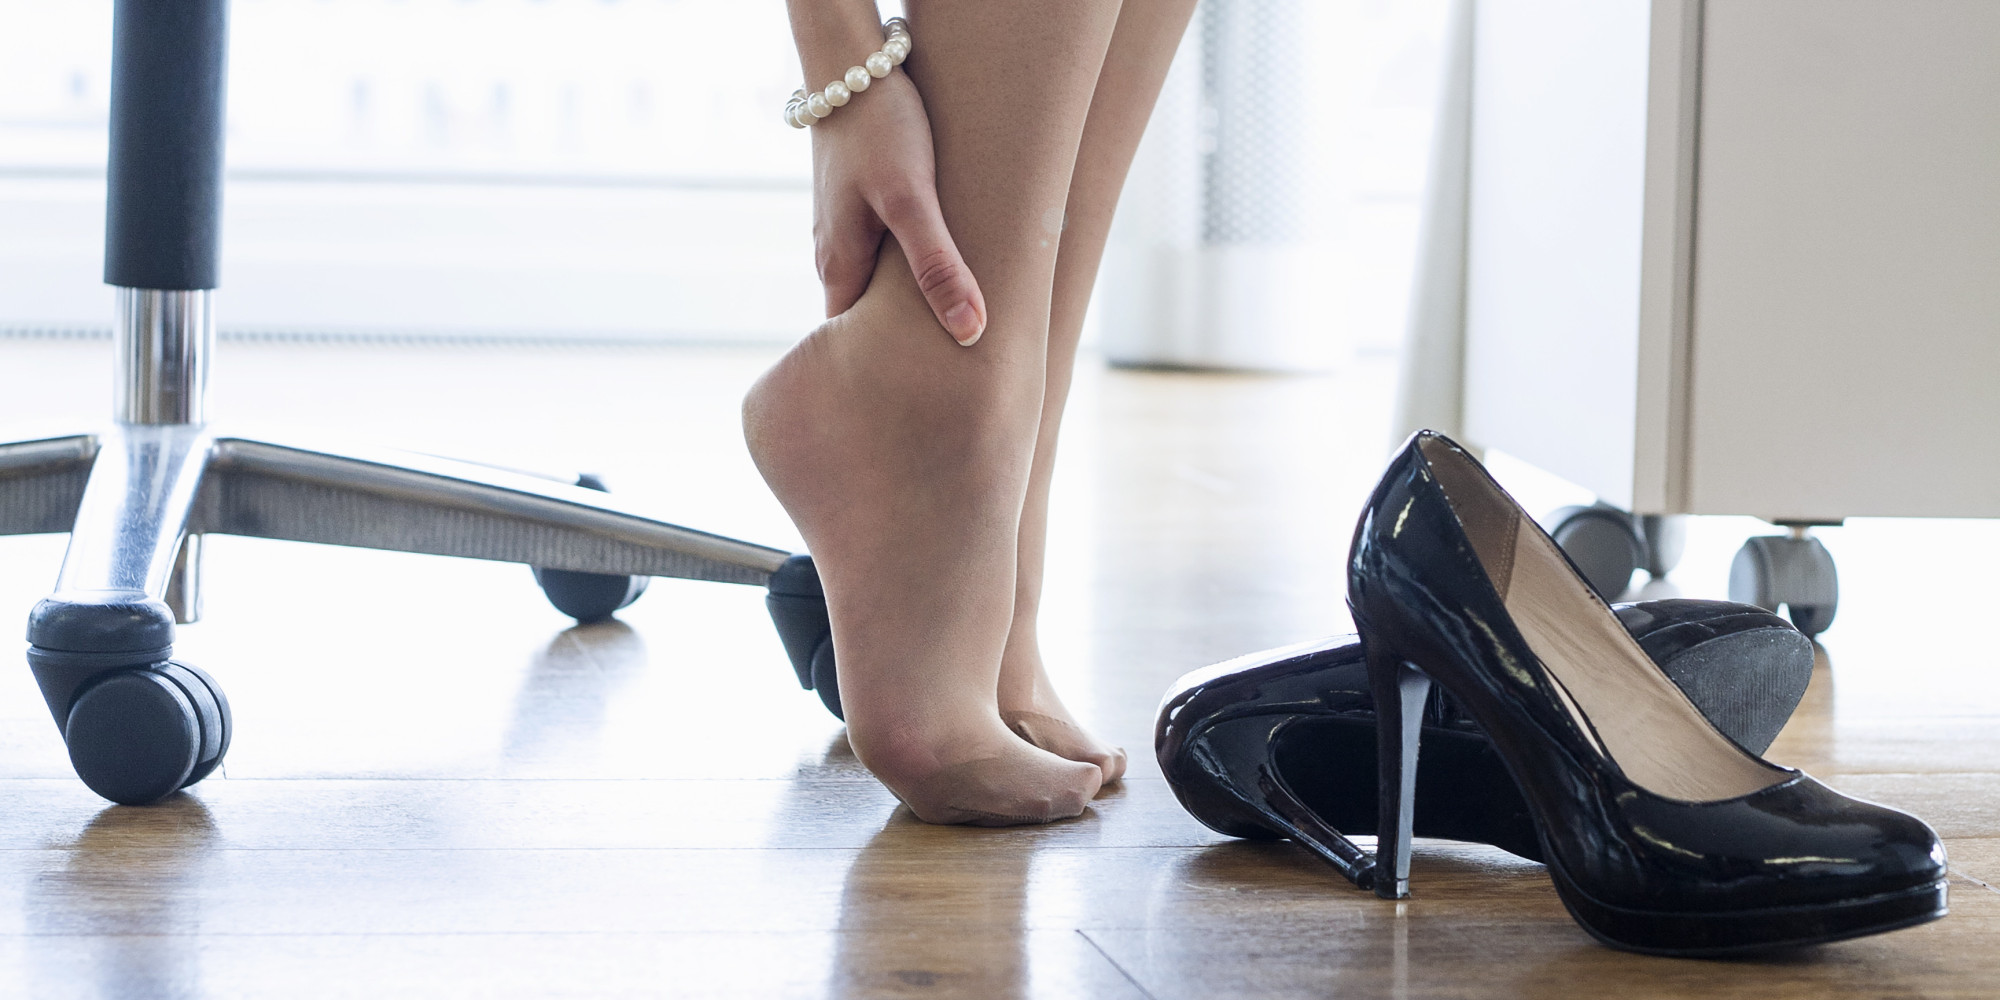 Excessive Physical Activities Cause Heel Pain Disorder